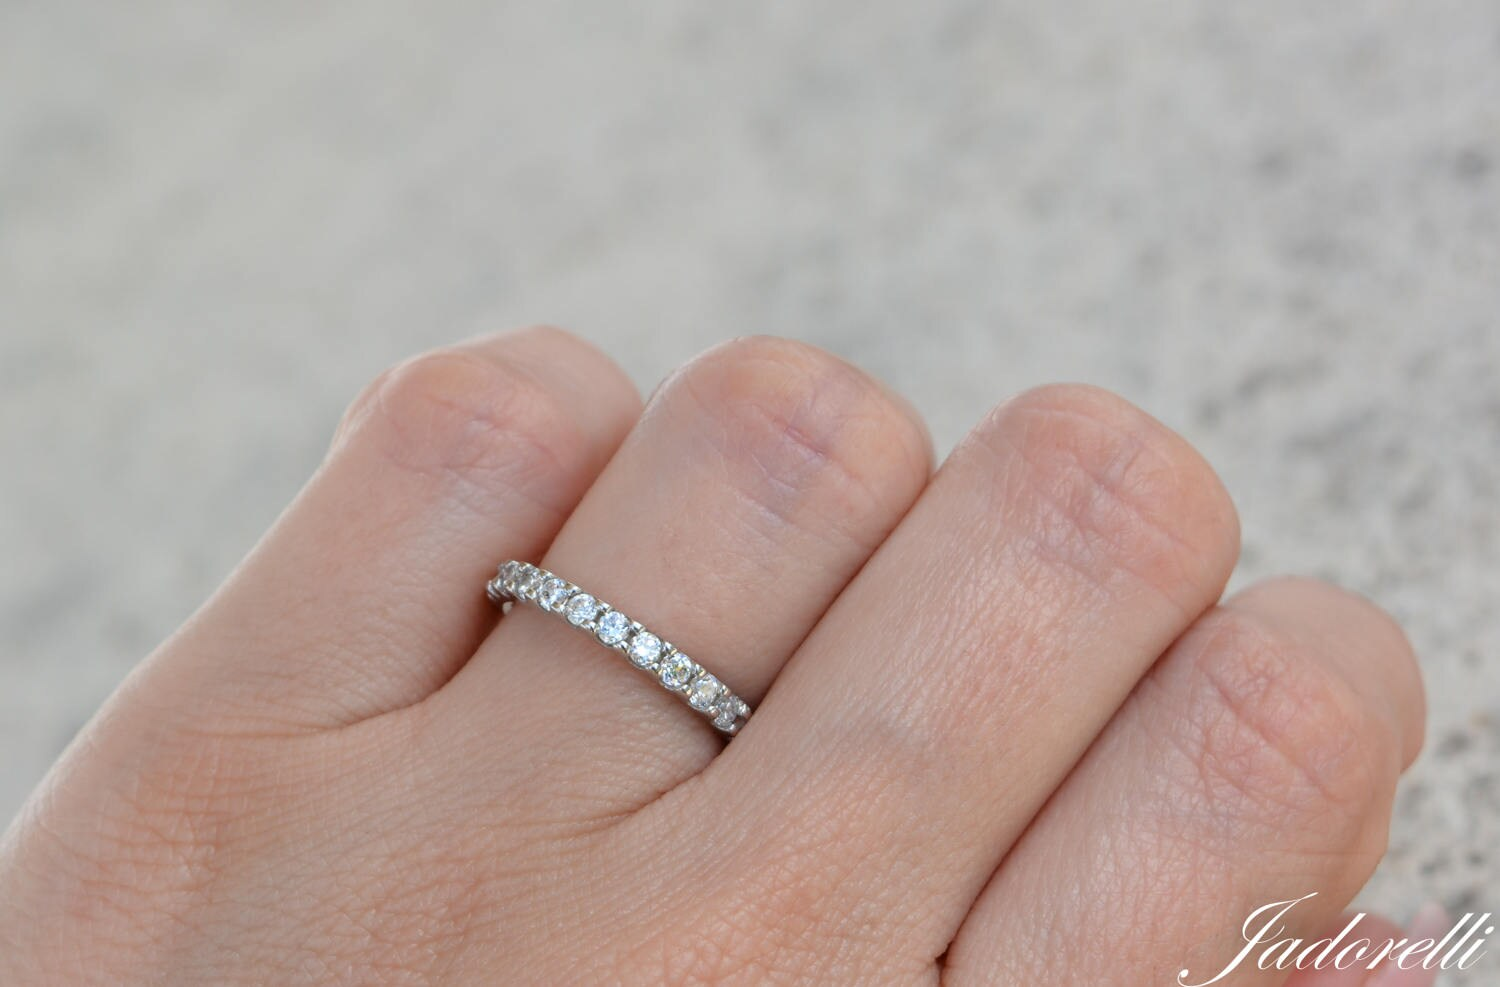 Sterling Silver 2mm High Quality Cz Full Eternity Ring.